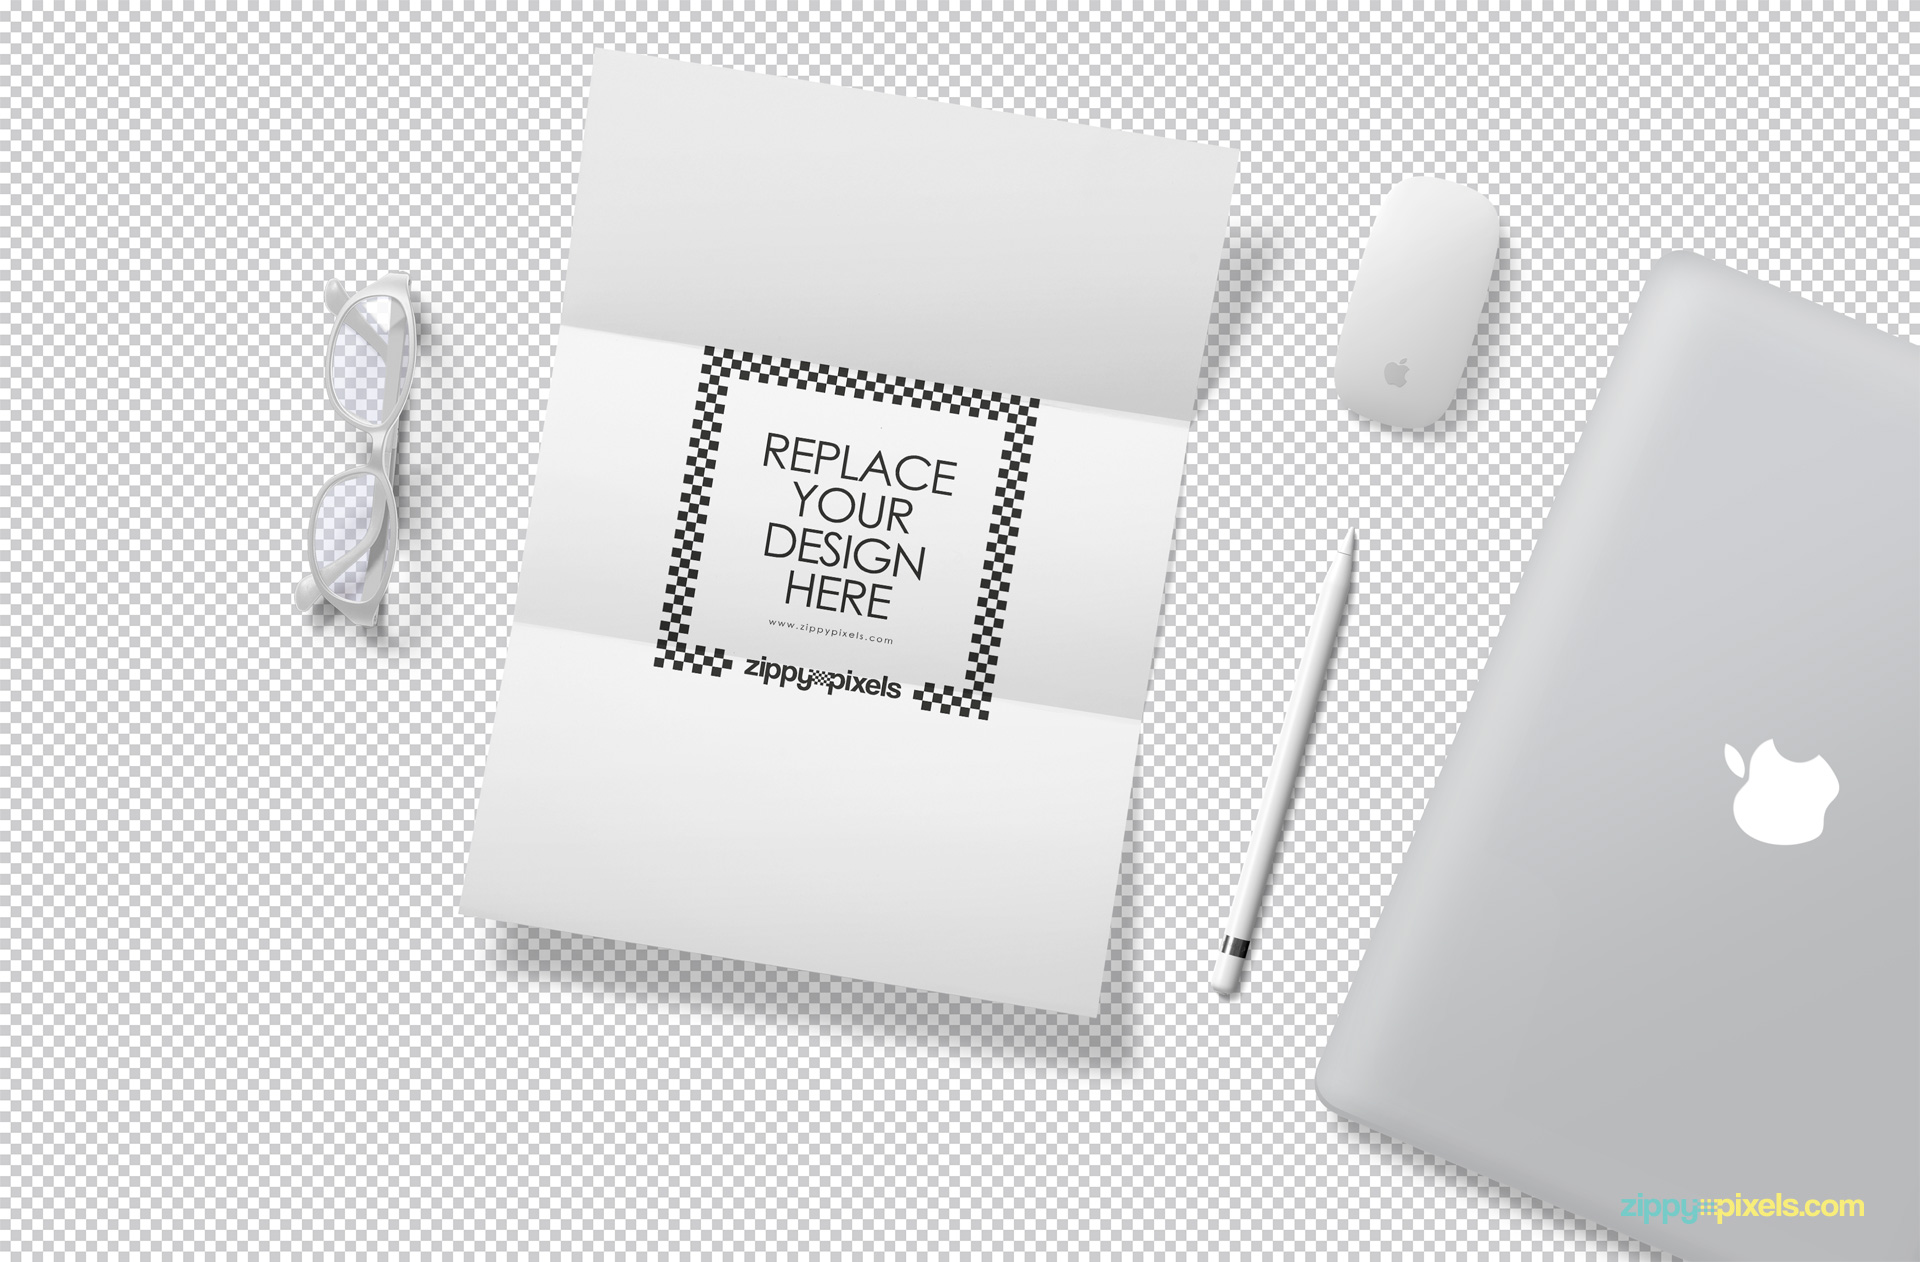 Use Photoshop to customize this letter mockup with your designs.